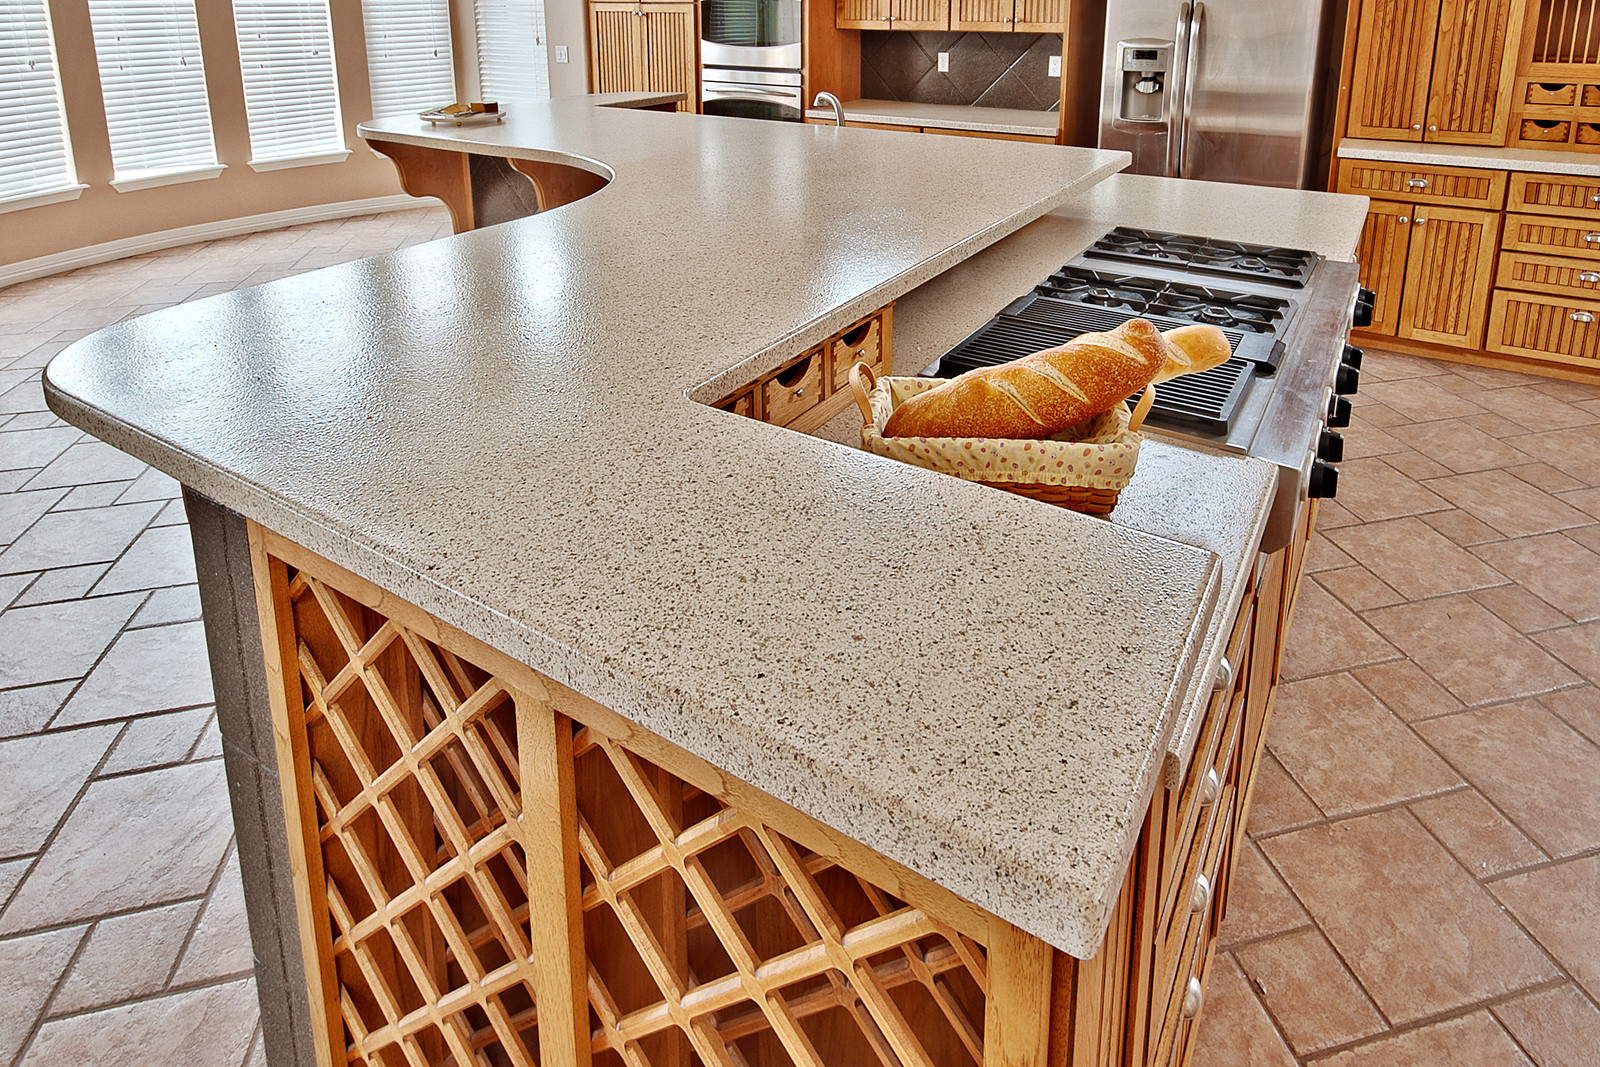 Corian Kitchen Countertops : Revive your outdated kitchen with countertop refinishing